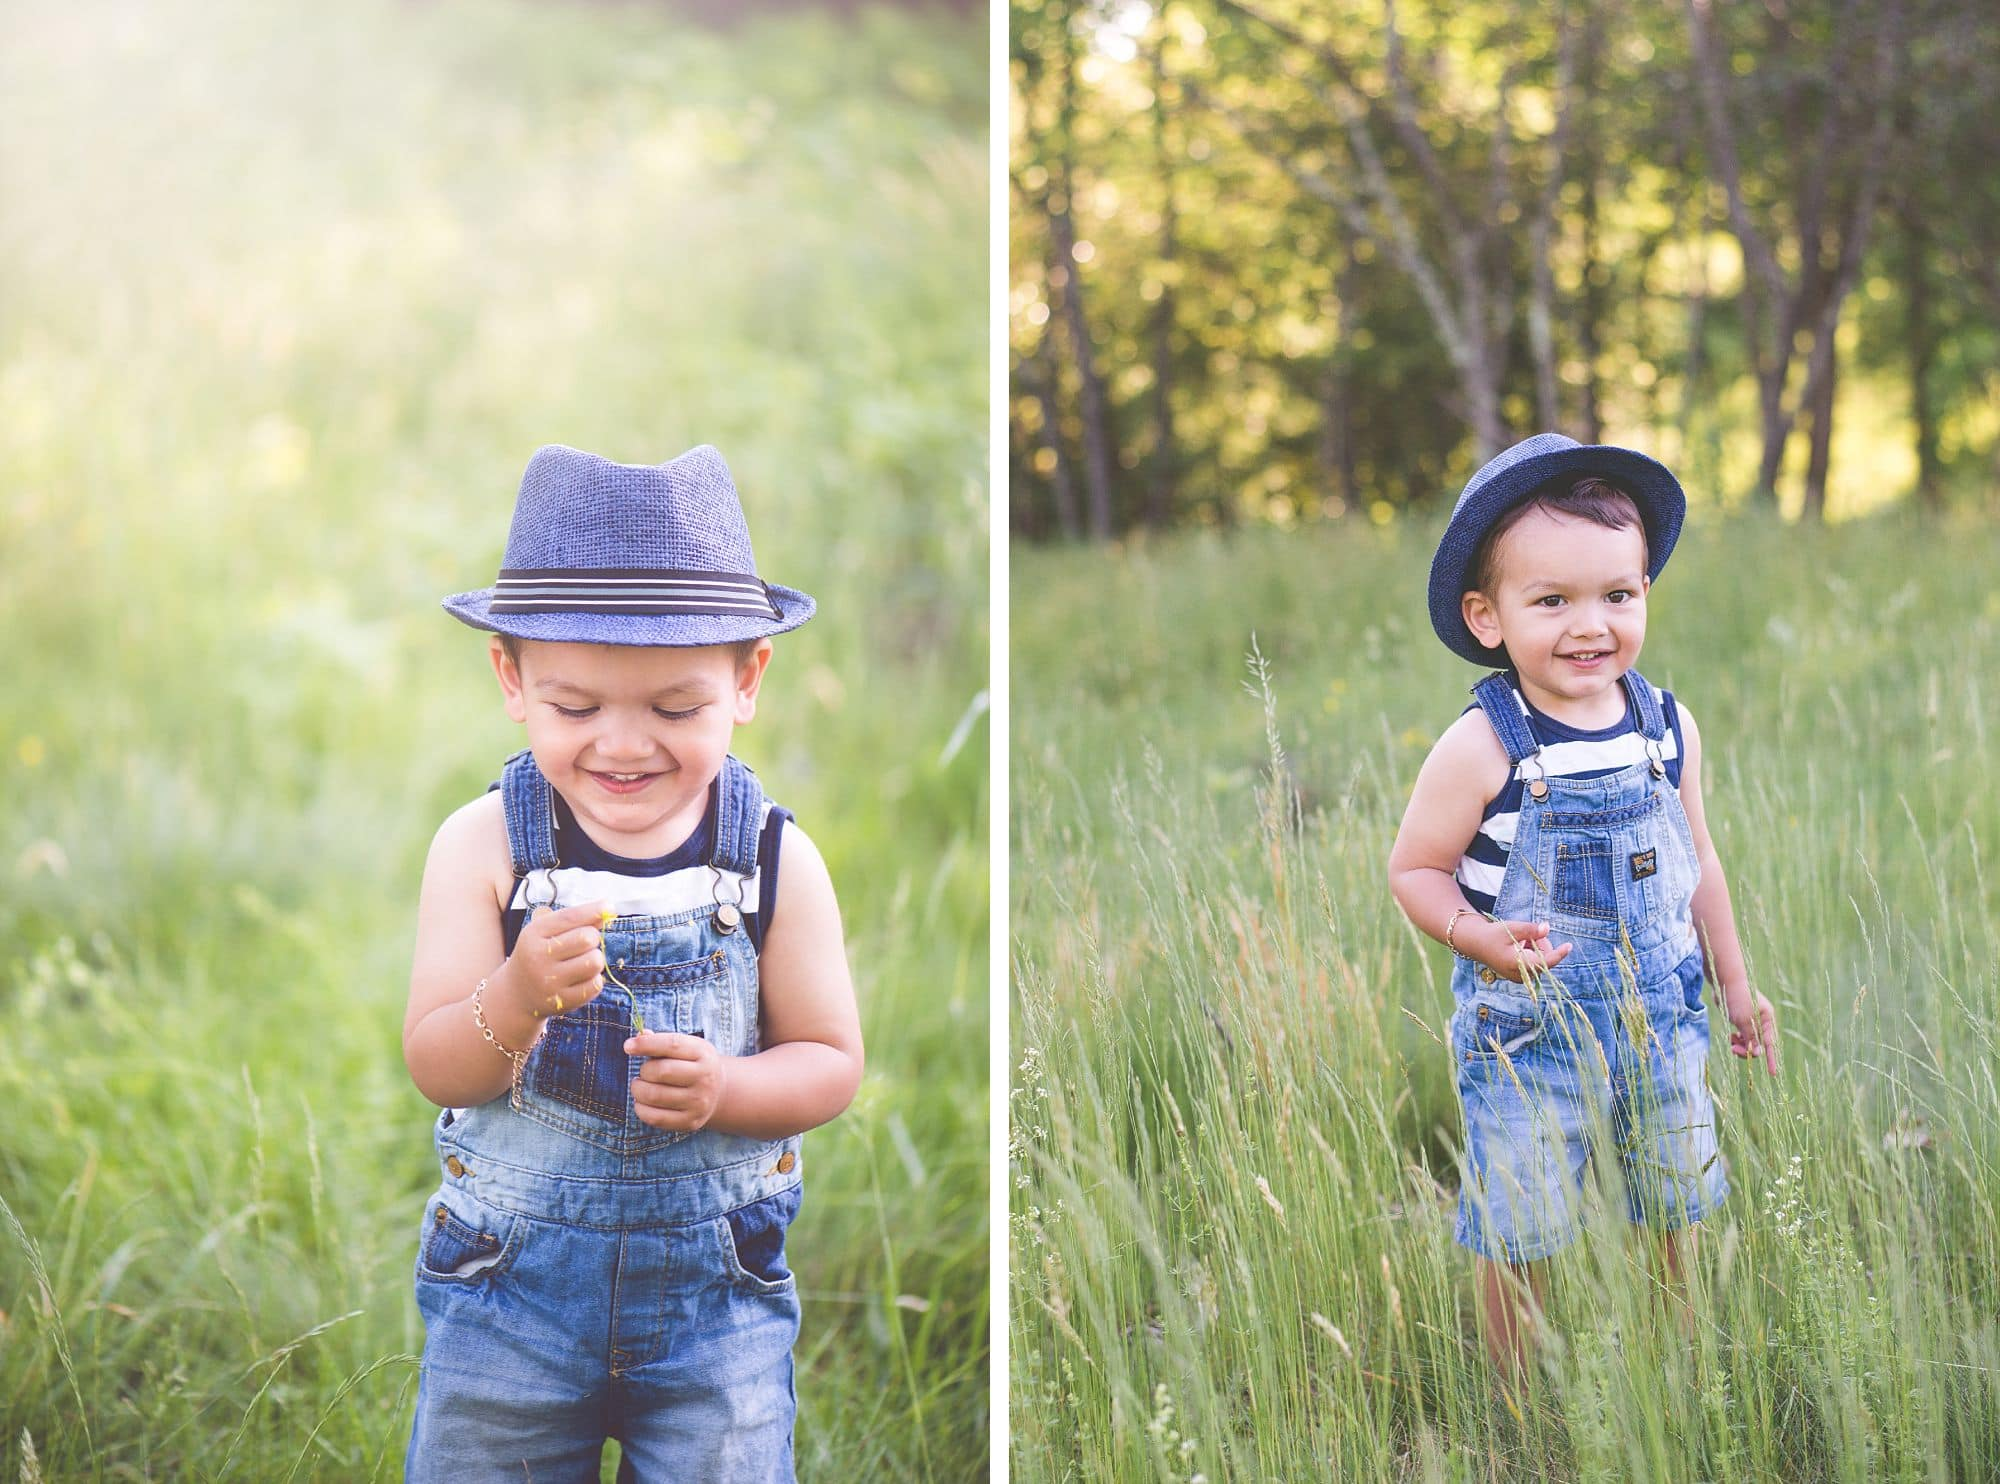 Toddler boy in blue overalls and fedora plays in a grassy field